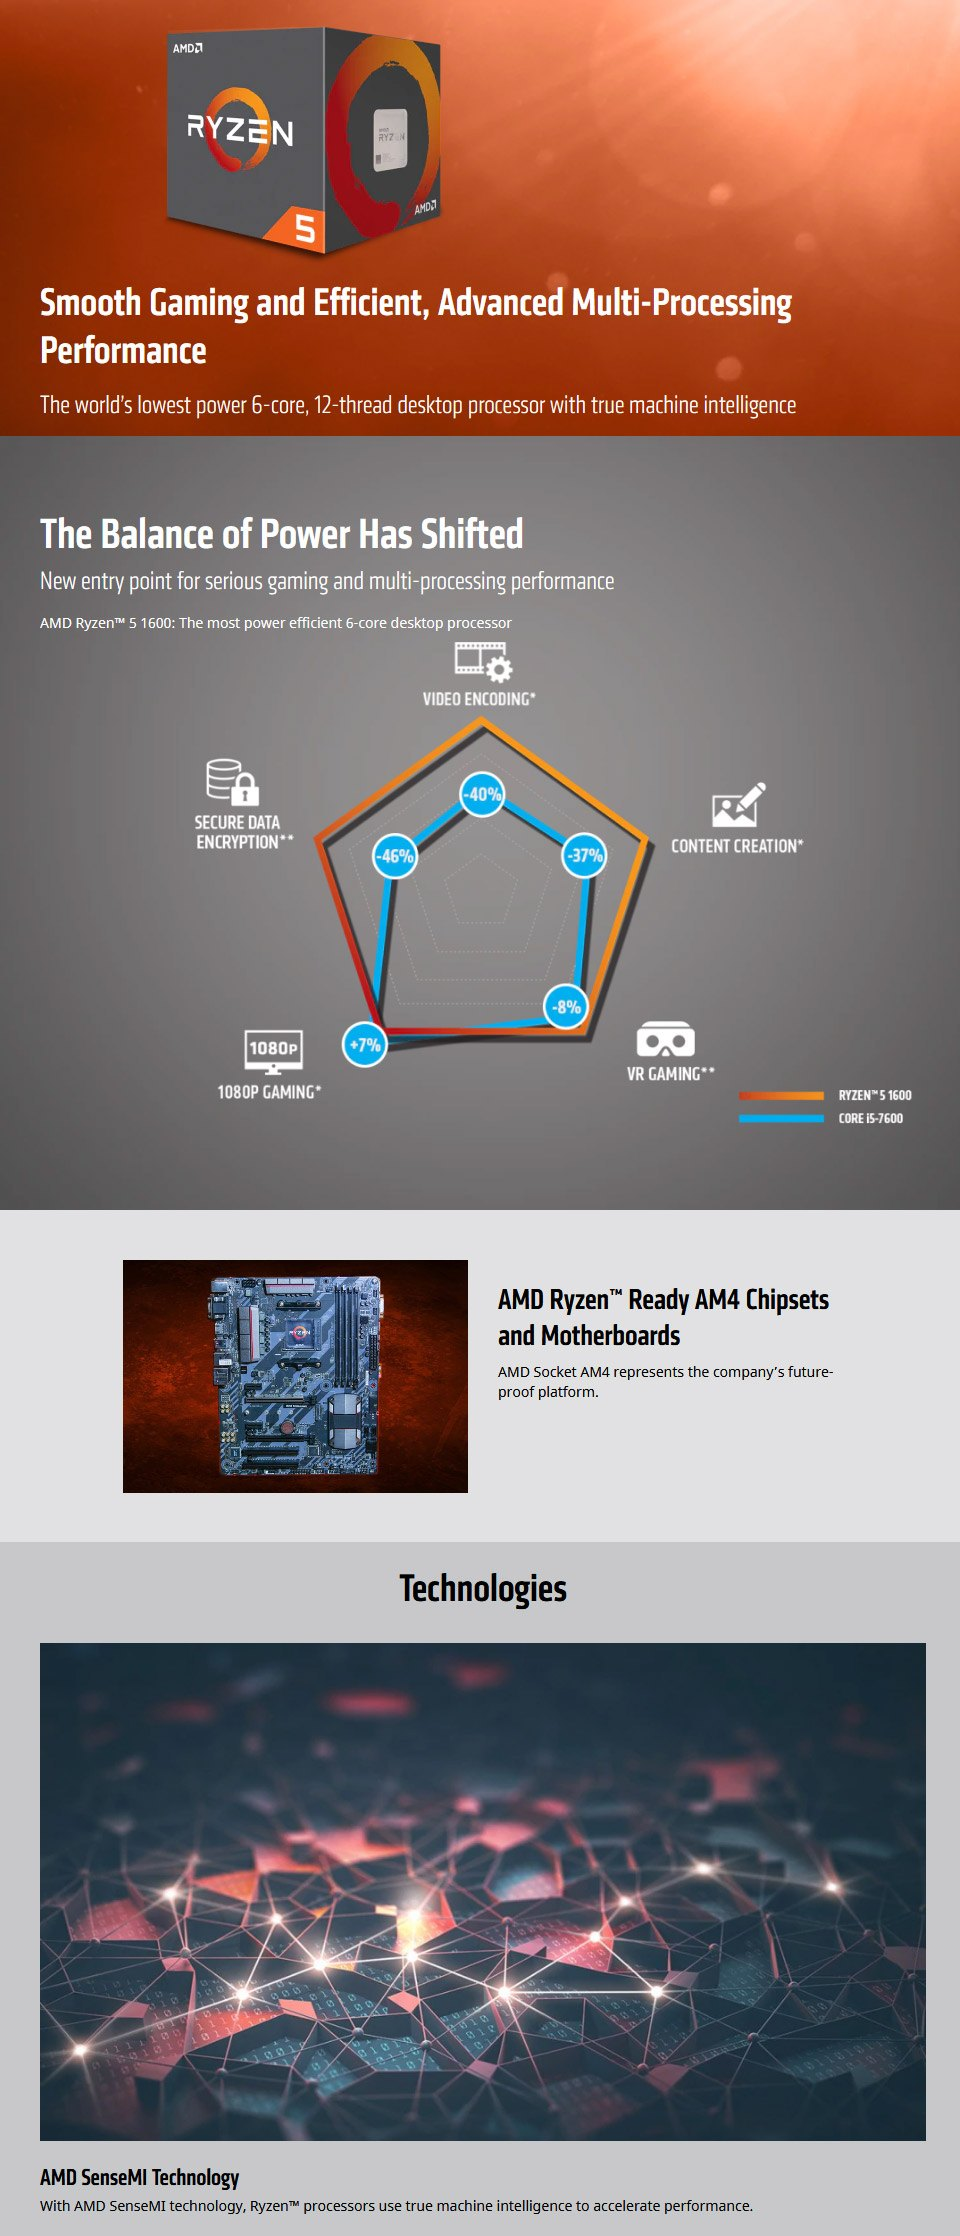 AMD Ryzen 5 1600 AF Processor with Wraith Spire features